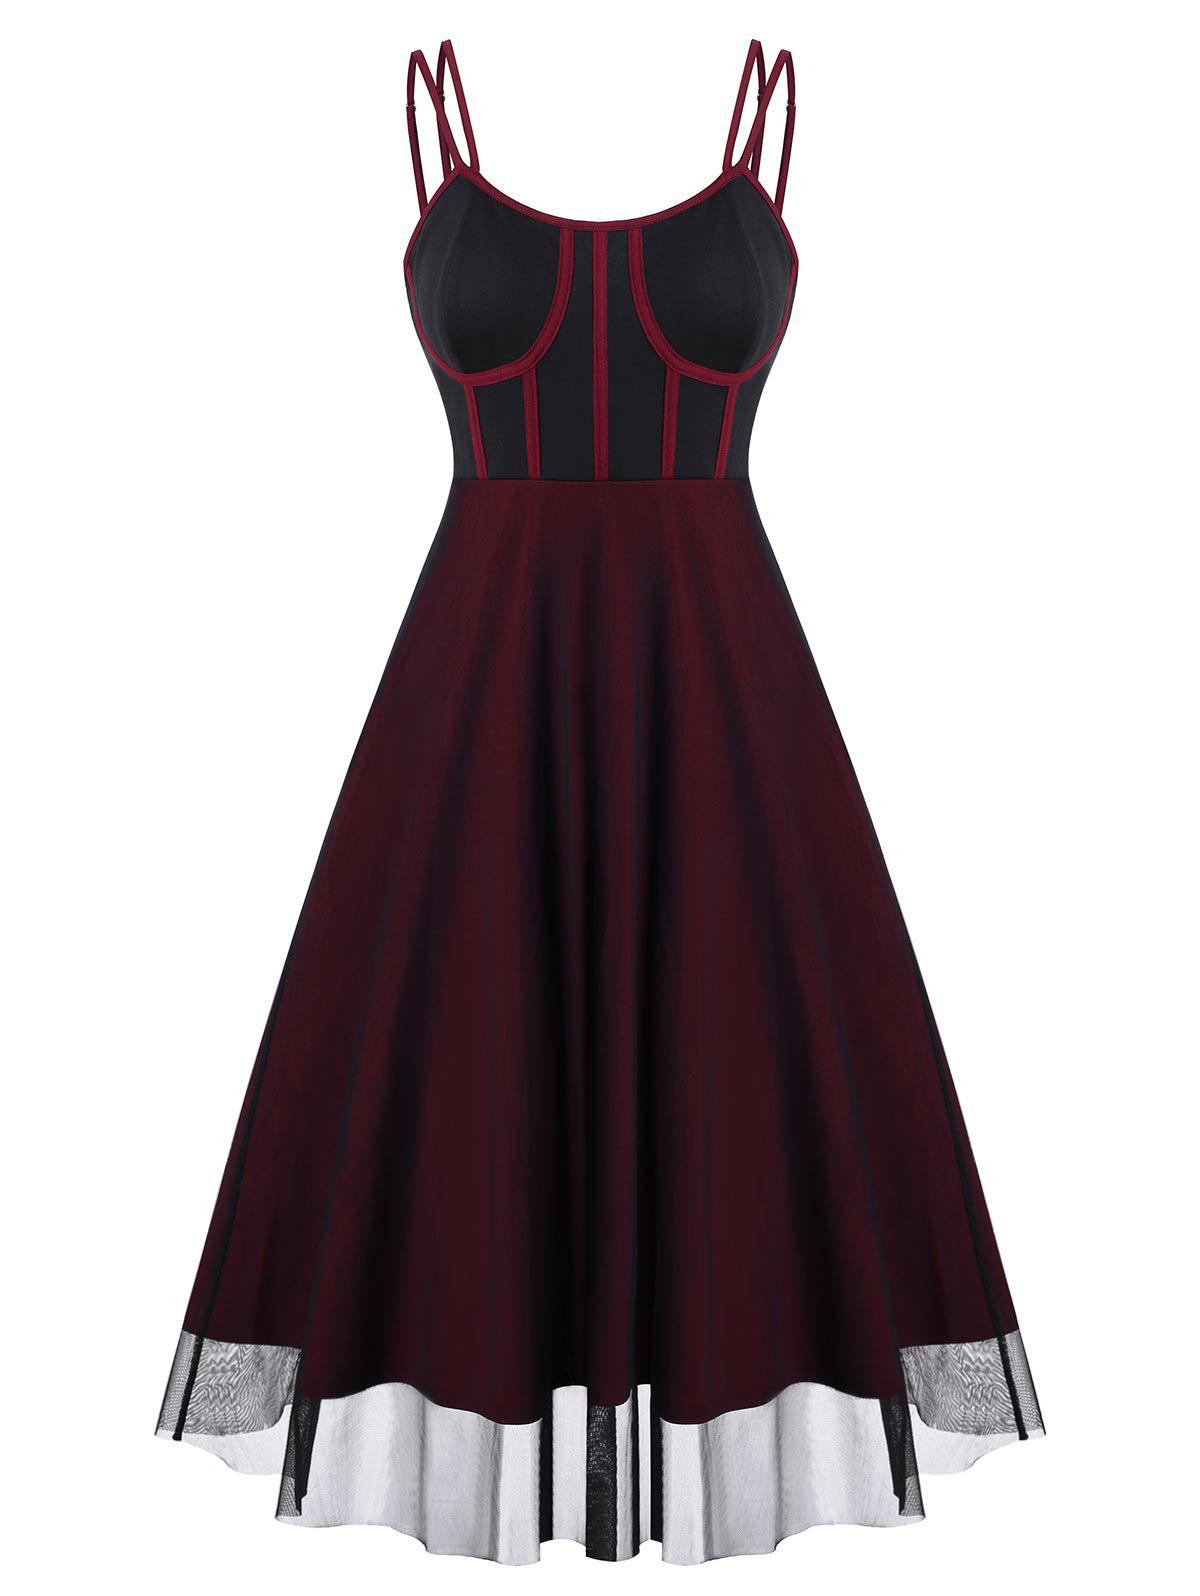 Piping Mesh Overlay Bustier Dress - DEEP RED L